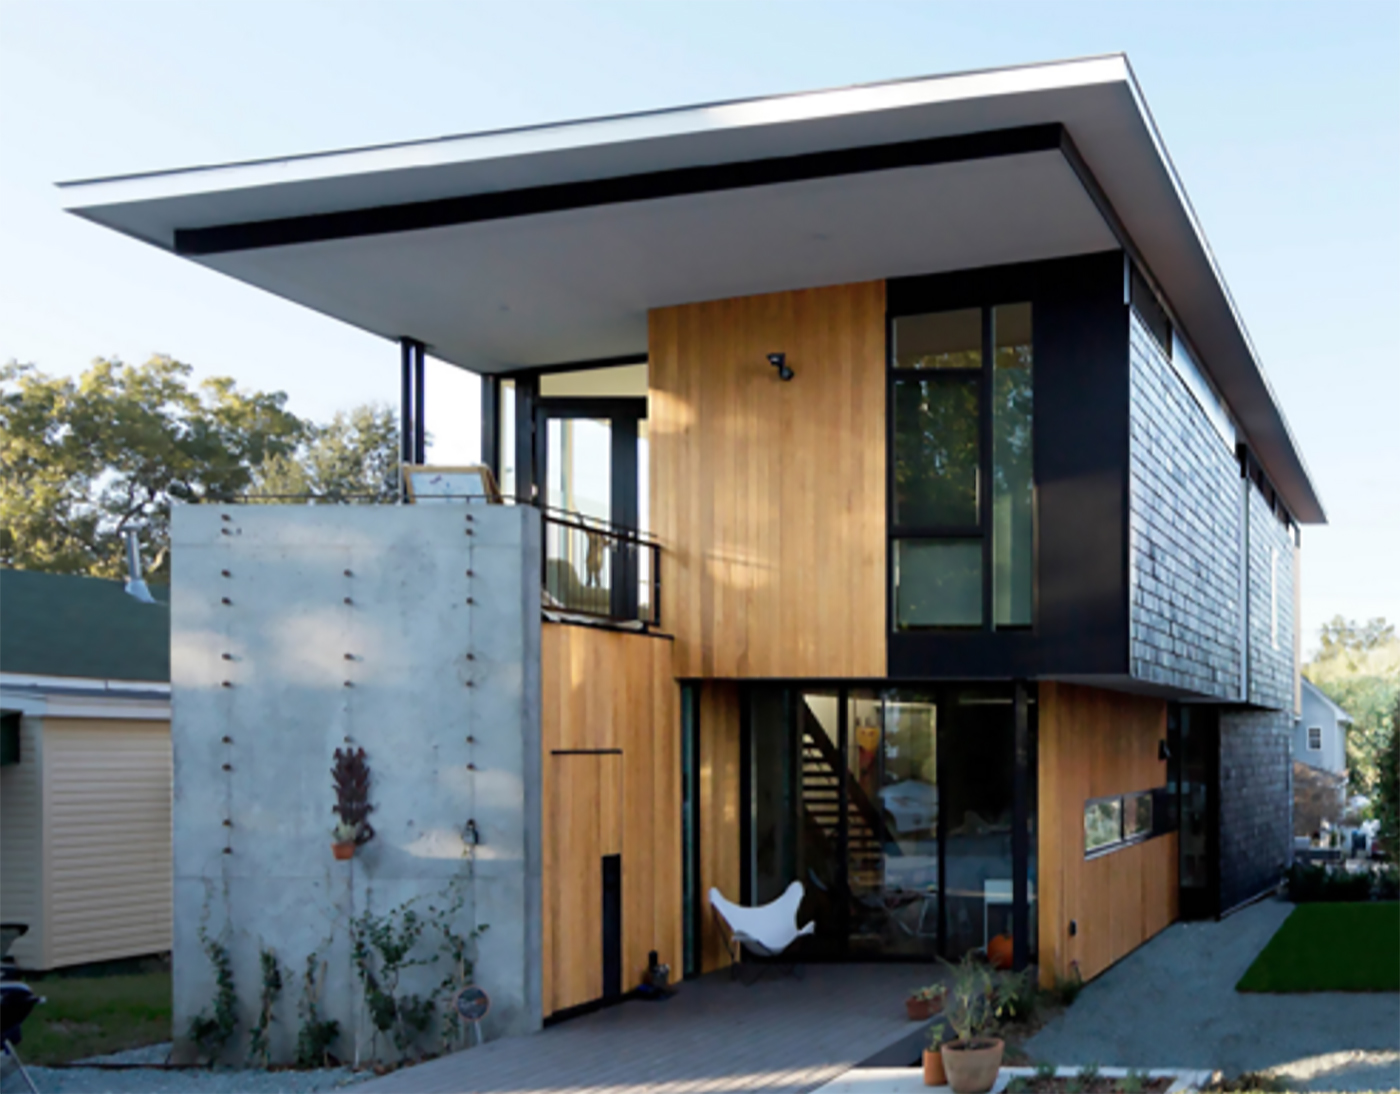 Two compact modern homes fill challenging empty lots in an old  urban  neighborhood compact modern homes in Raleight by RACo 7   Inhabitat   Green  Design   Two compact modern homes fill challenging empty lots in an old  . Modern Home Exterior Materials. Home Design Ideas